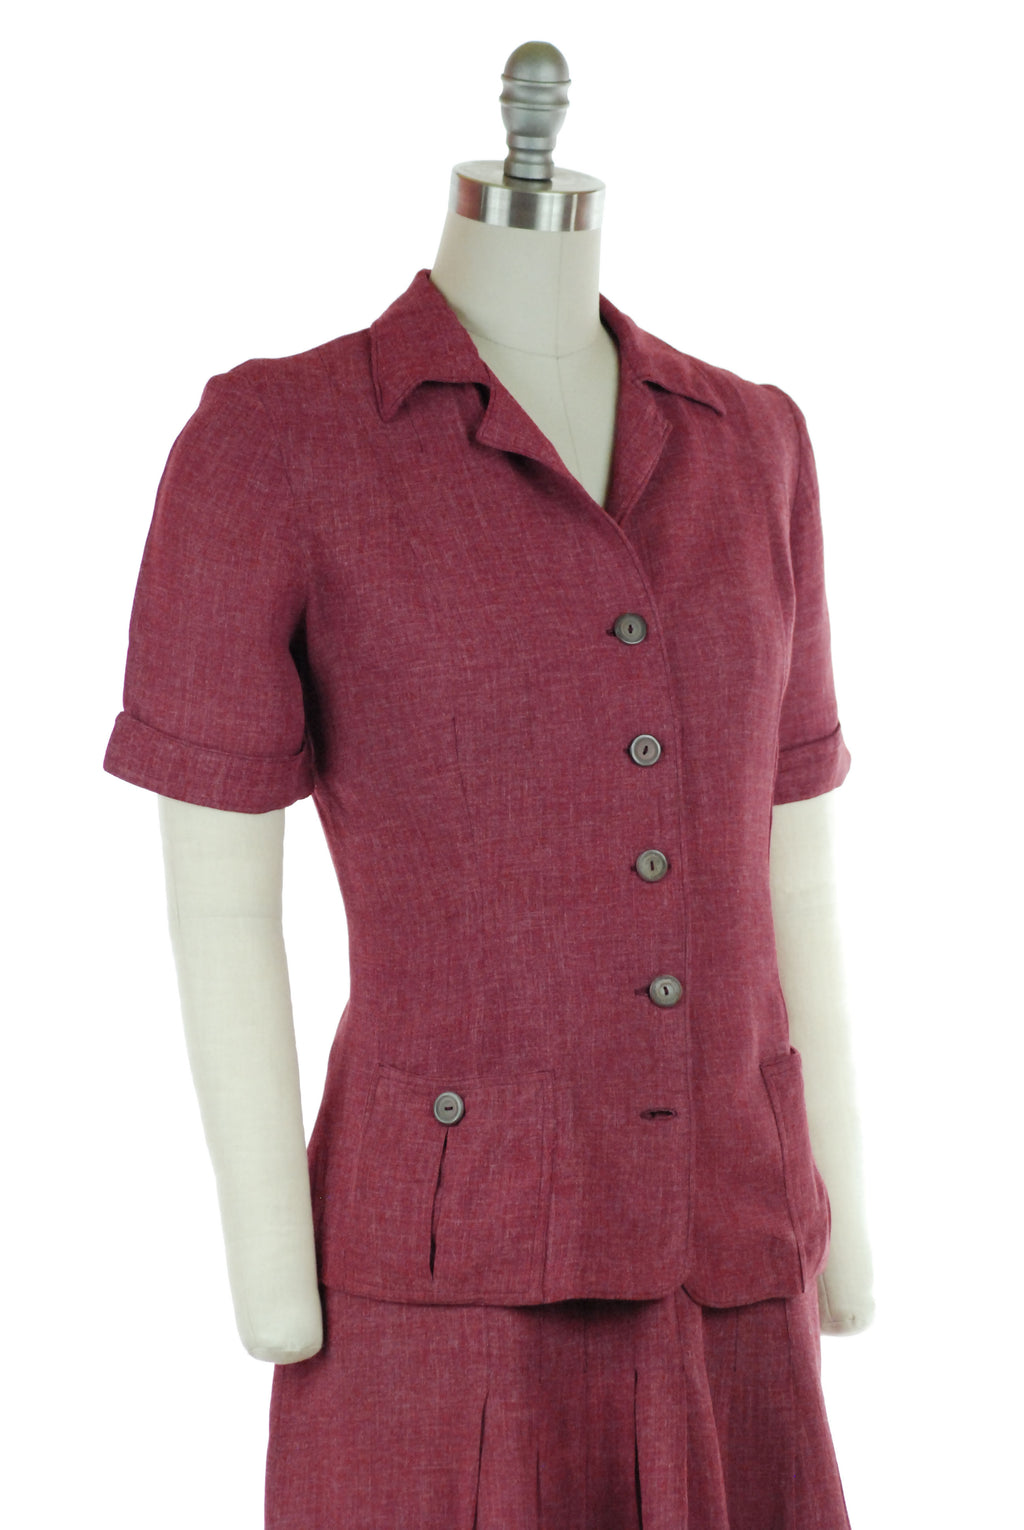 Sporty Early 40s Two Piece Skirt and Top Set in a Silk Wool Blend of Heathered Plum